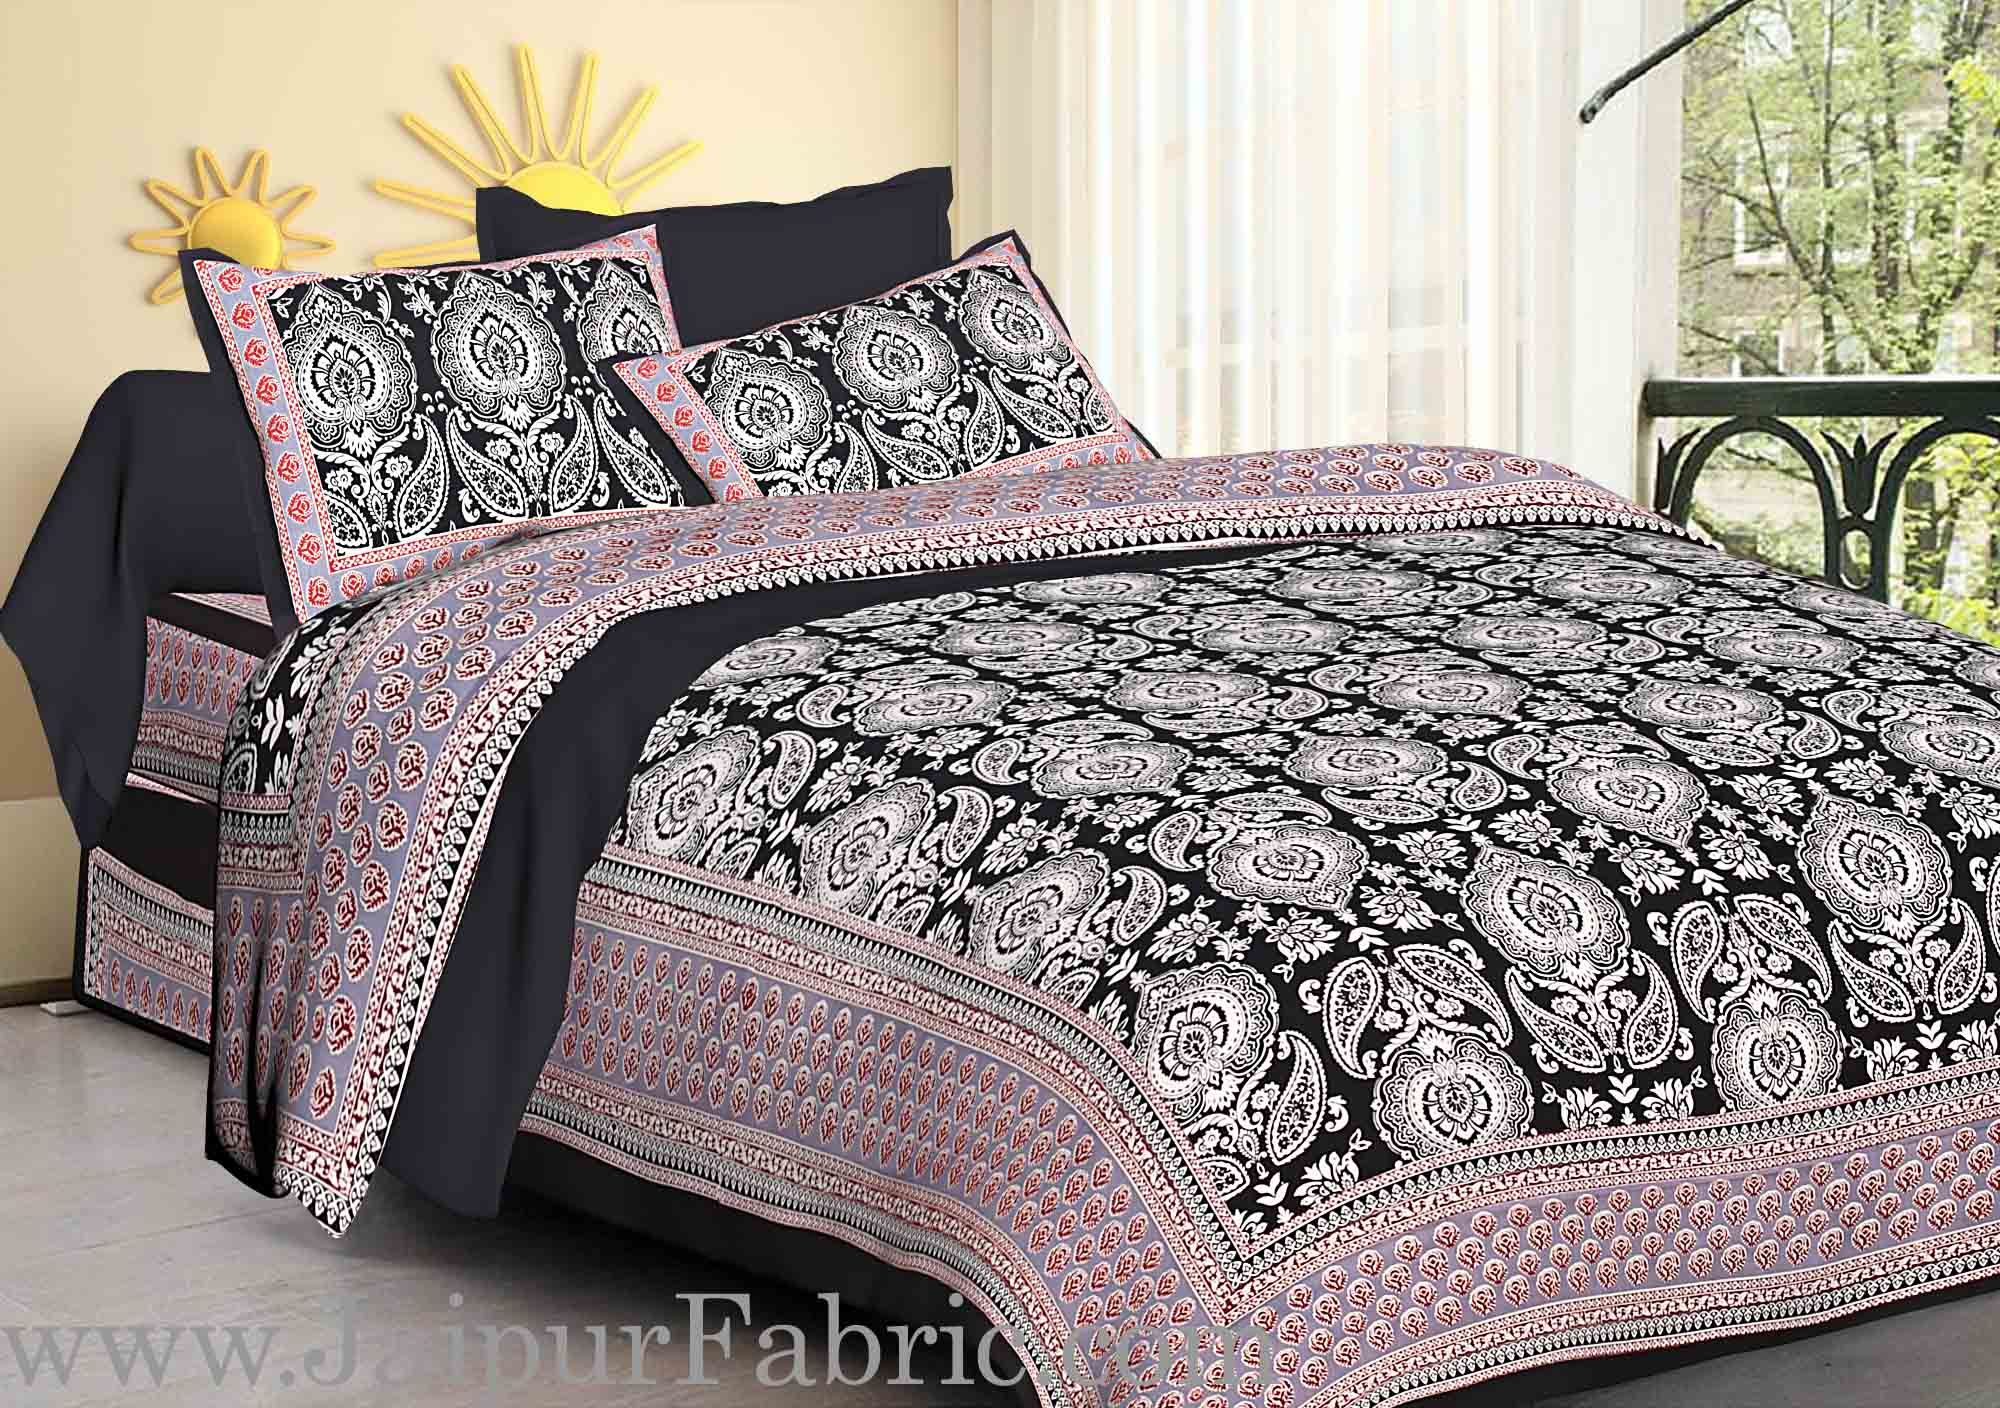 Black  Border Large Booty Print Cotton Double Bed Sheet